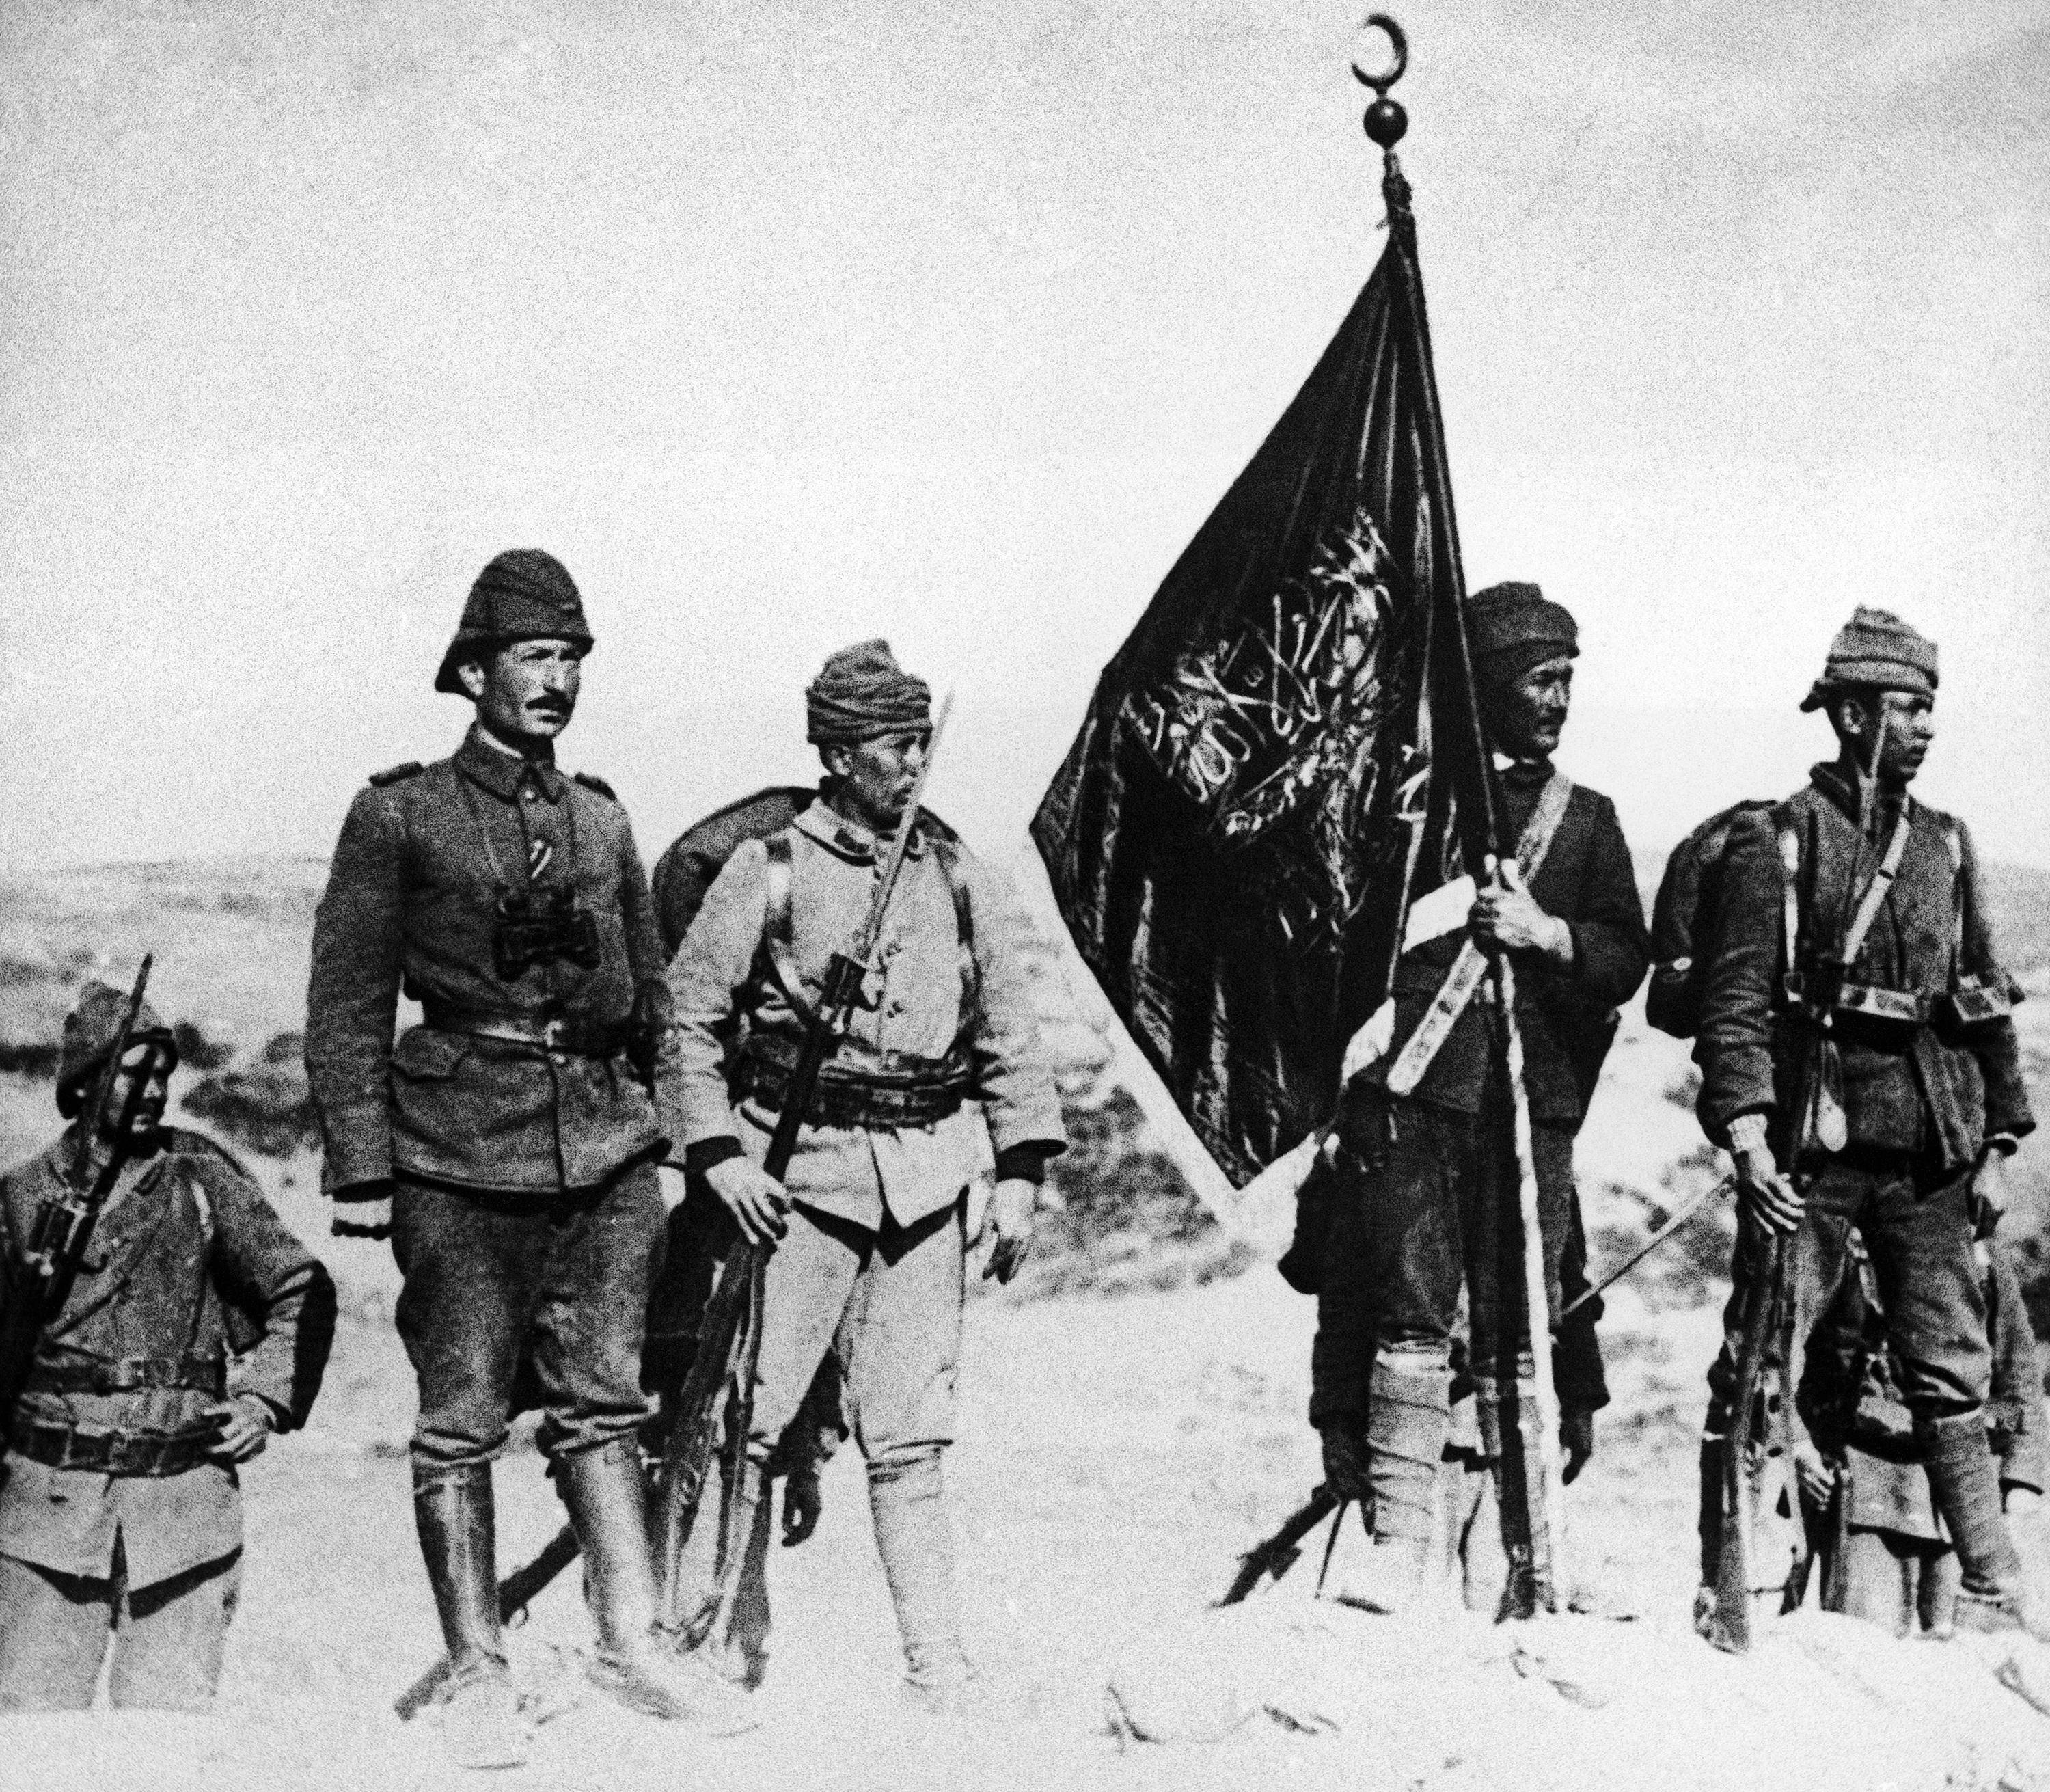 43 OF 100: In this 1915 photo, Turkish soldiers raise their flag at Kanli Sirt, Gallipoli, Turkey during World War I.